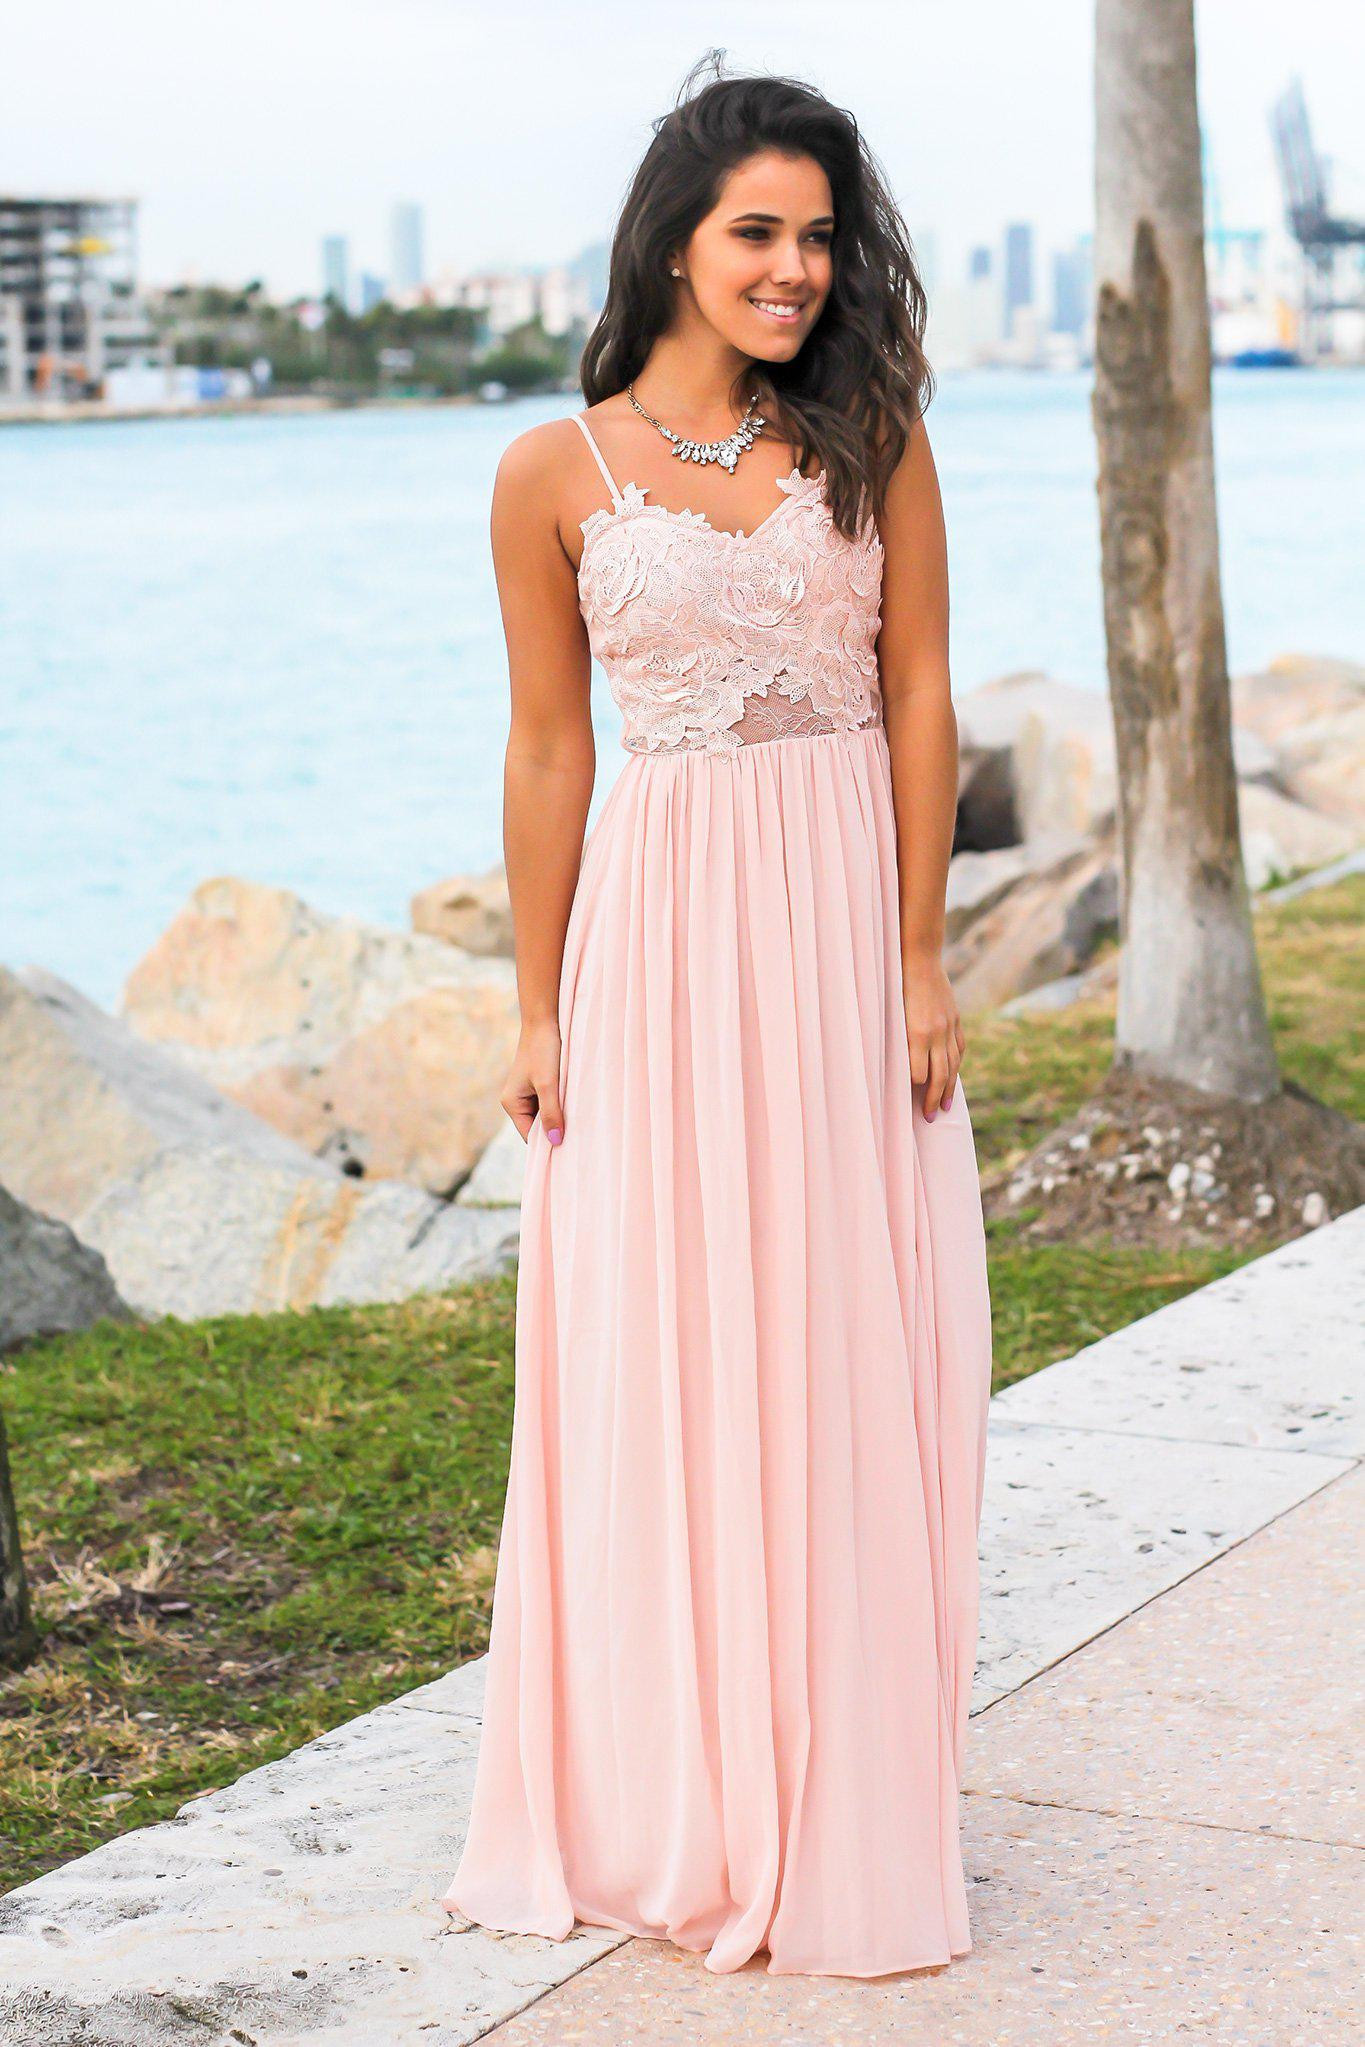 Blush Strapless Maxi Dress with Crochet Top